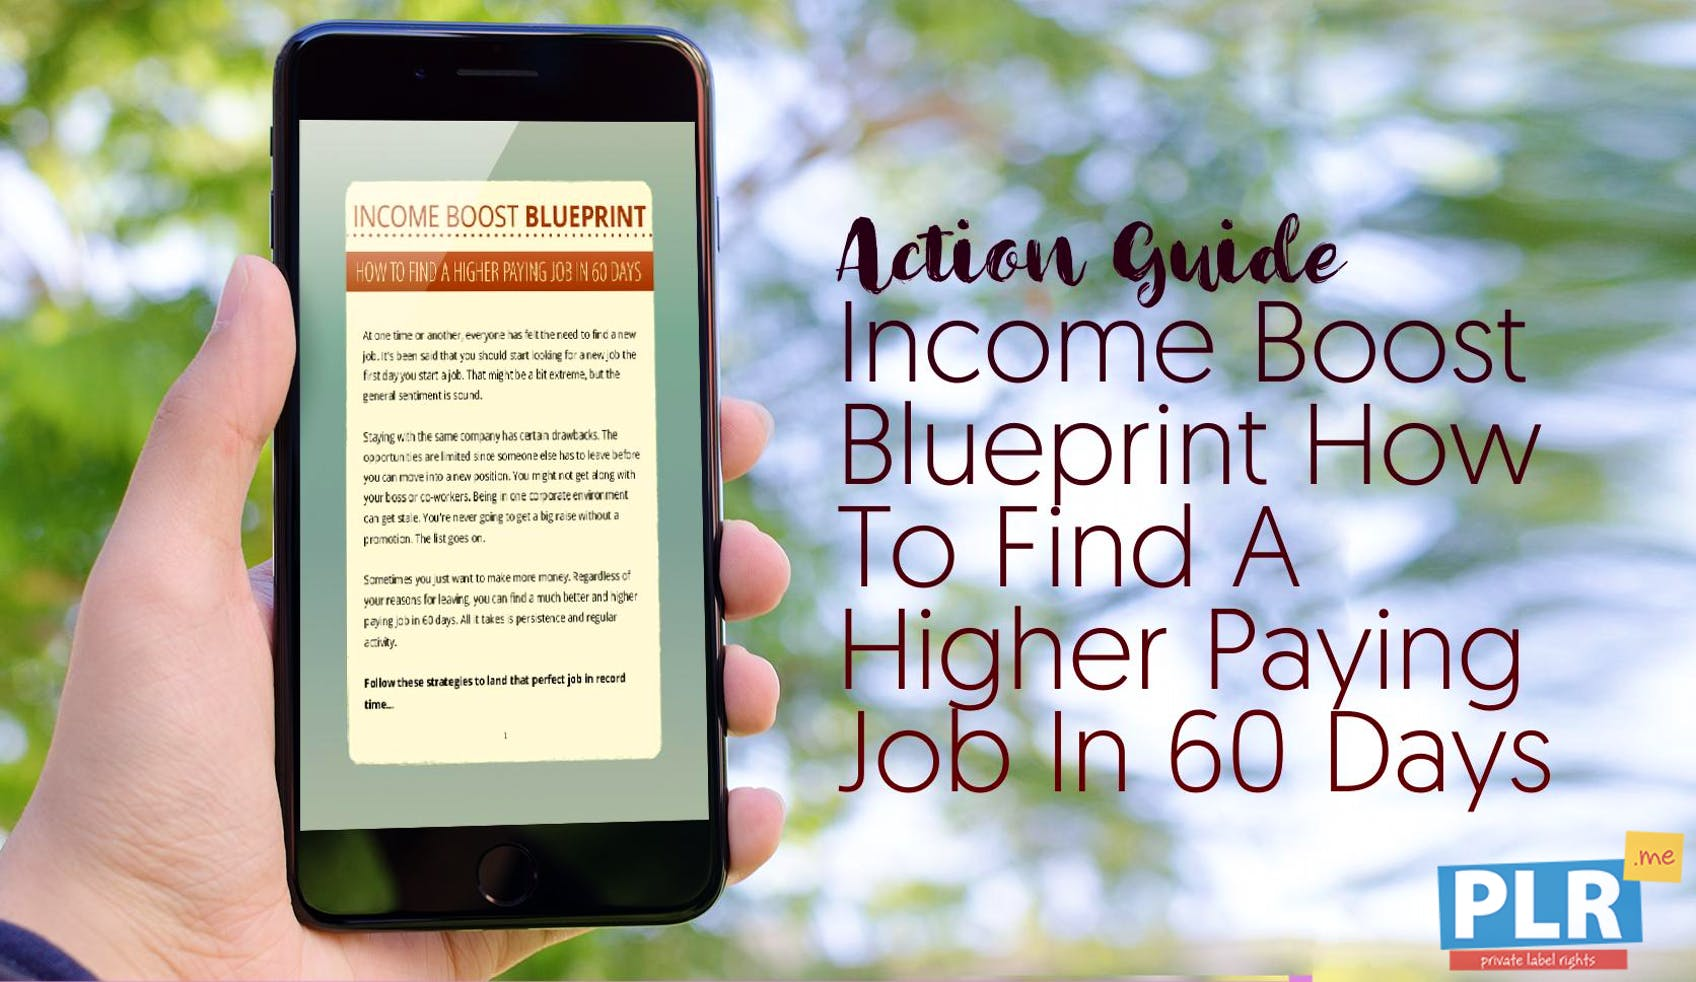 Income Boost Blueprint How To Find A Higher Paying Job In 60 Days